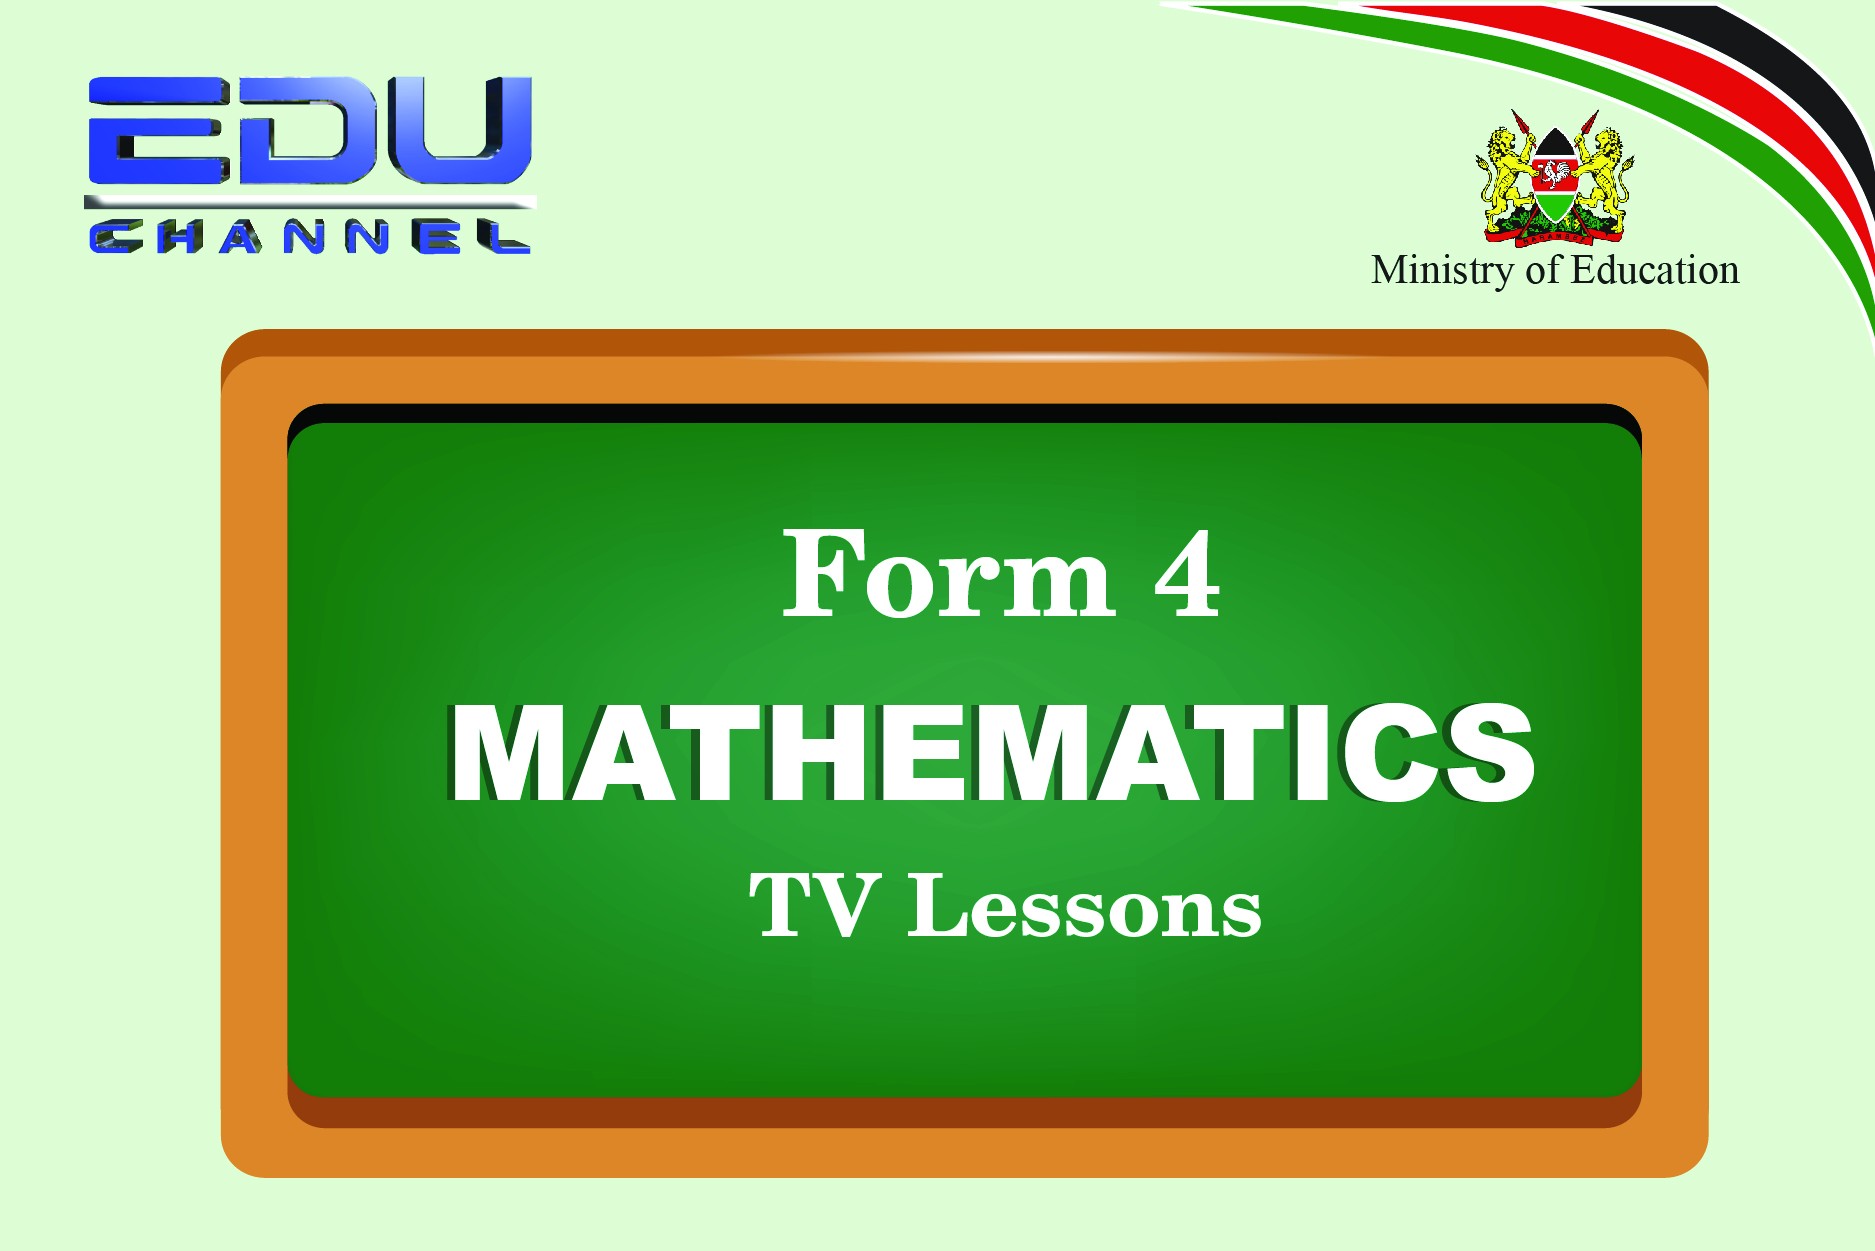 Form 4 mathematics Lesson 2: Statistics variance and Standard Deviation